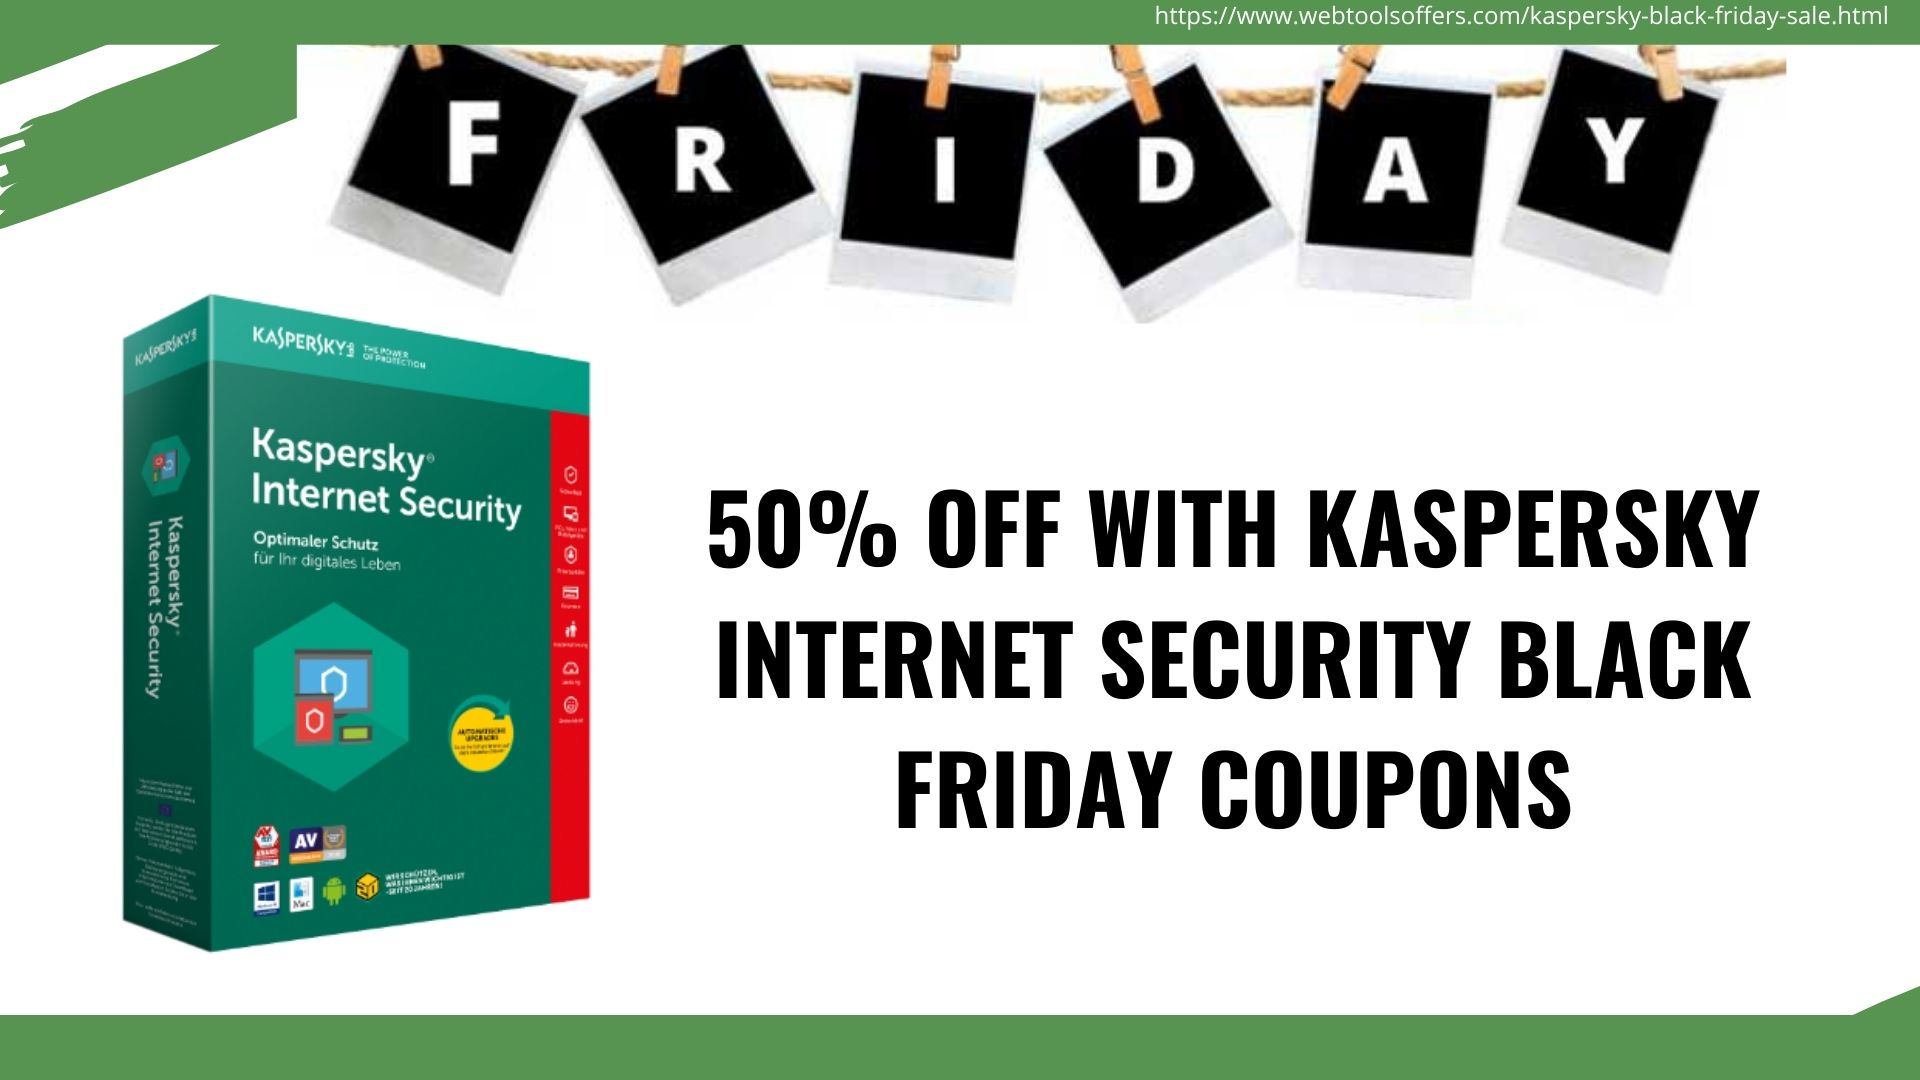 Kaspersky Black Friday Coupon Codes